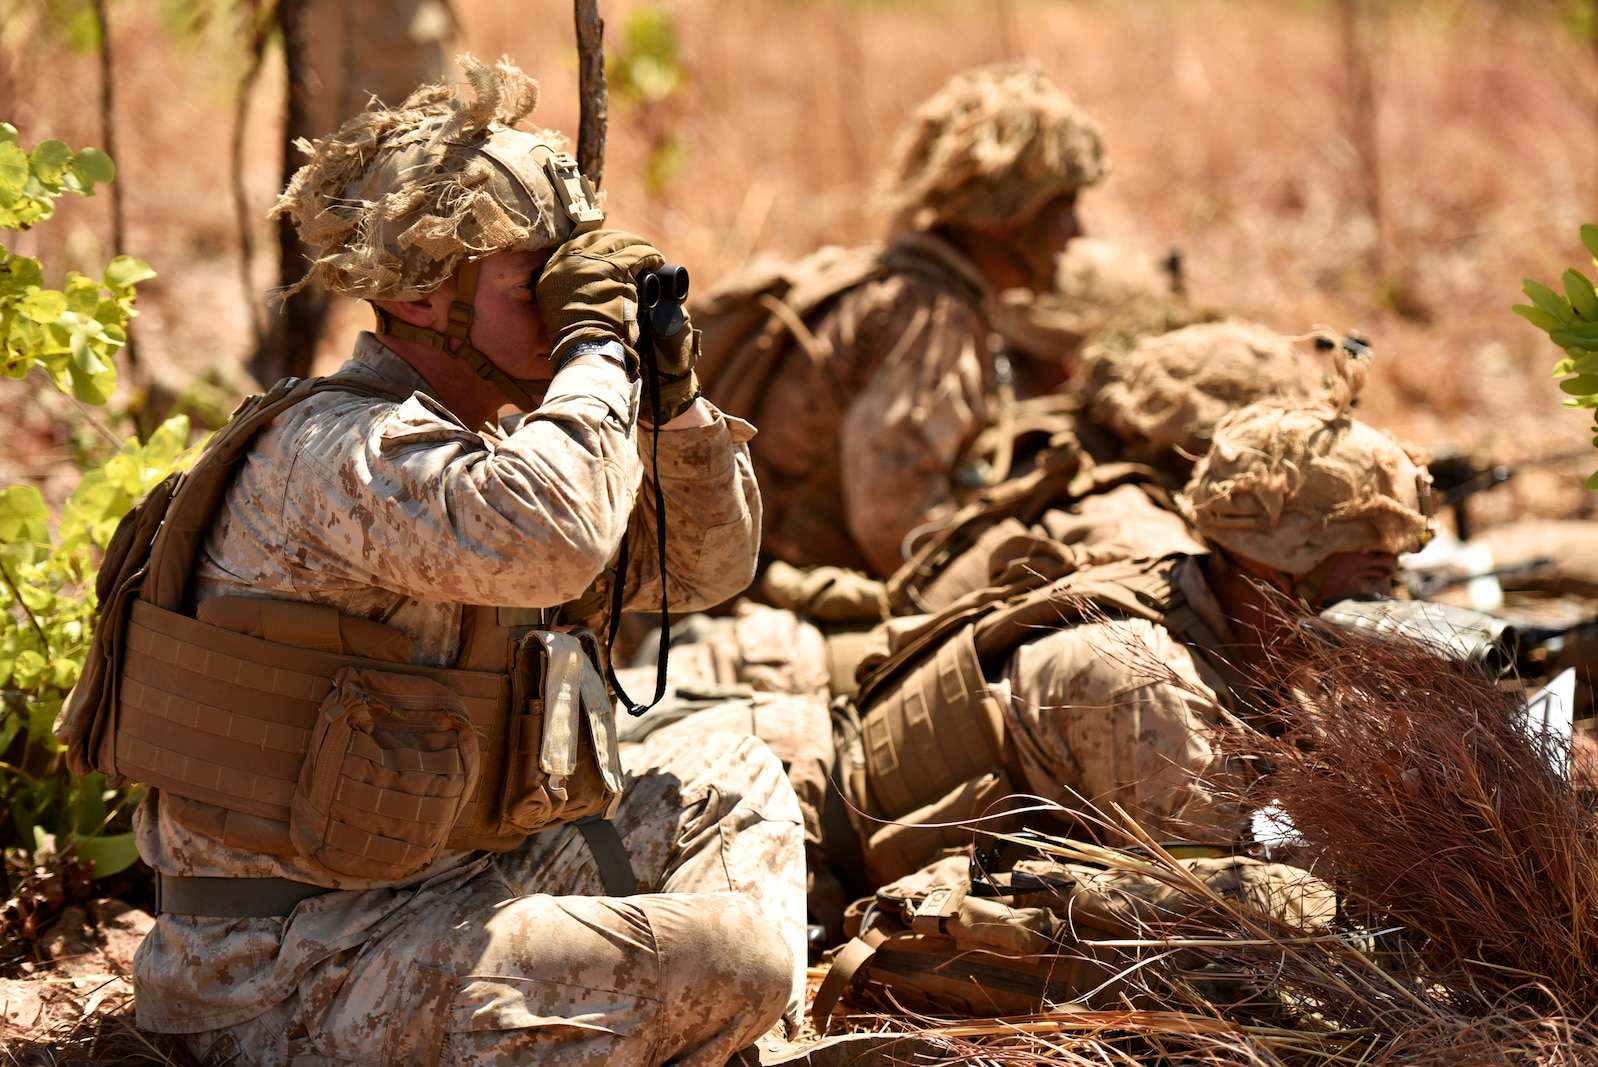 Capt. Benjamin J. O'Donnell, infantry officer with 2nd Battalion, 4th Marine Regiment, 1st Marine Division, views the targets while providing indirect fire support from M777 artillery, 81mm mortars and close air support during training Aug. 10, 2018, at Mount Bundey Training Area, Northern Territory, Australia.